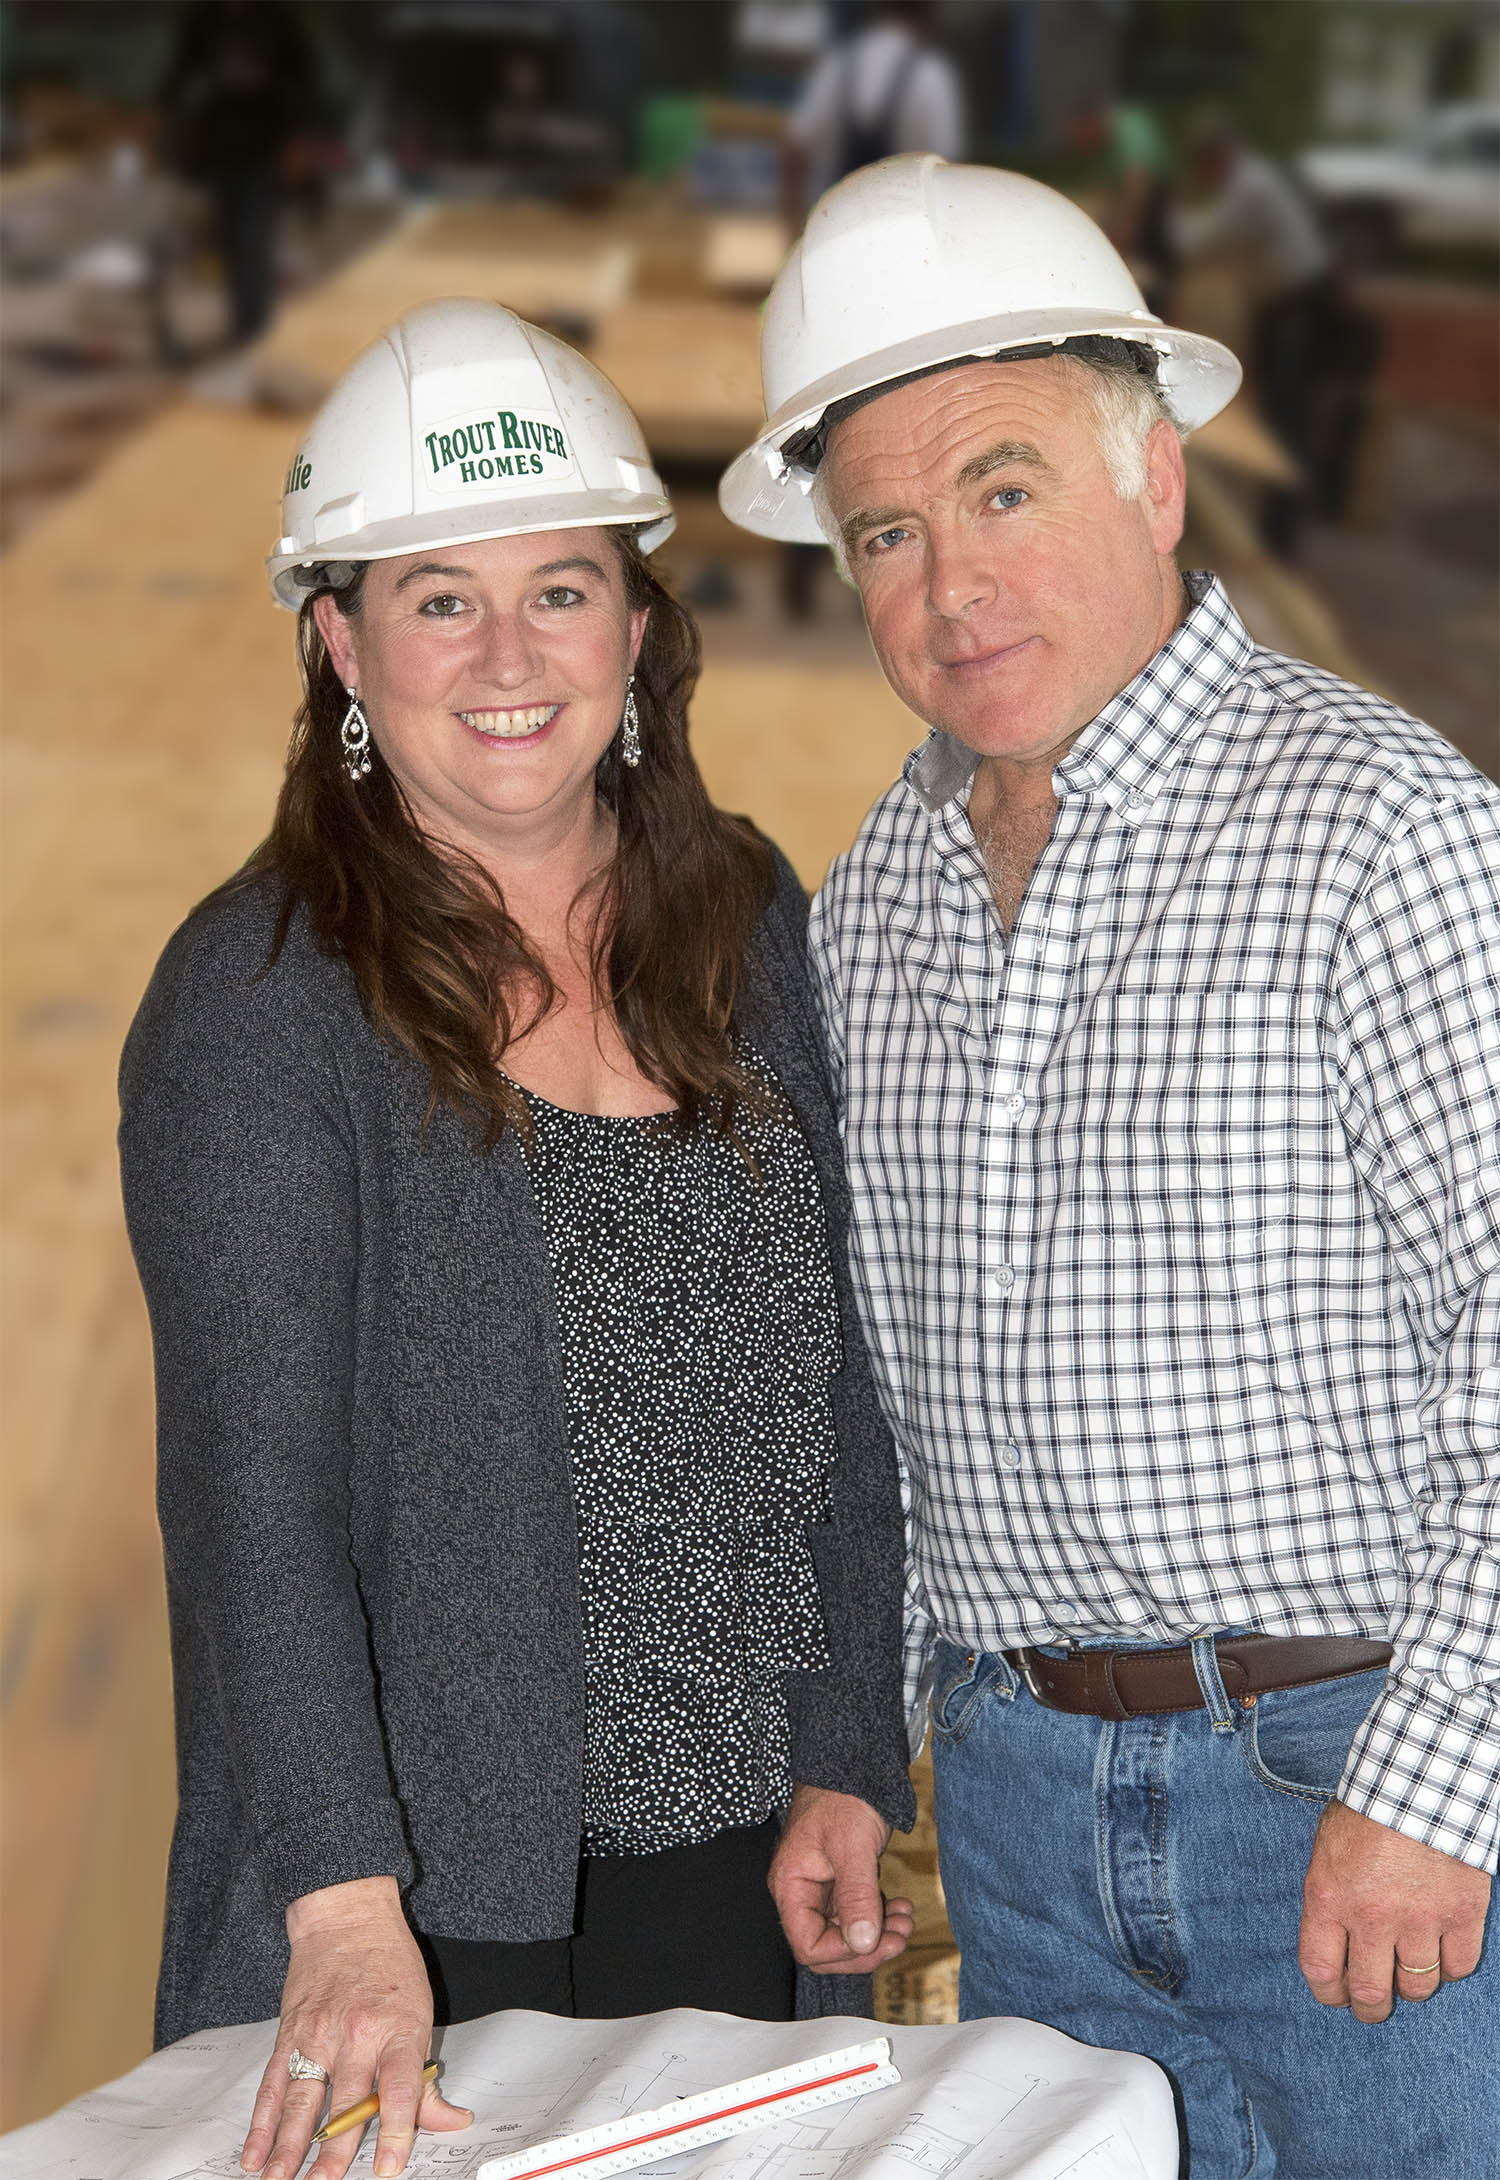 Owners / Operators Natalie and Terry Perry